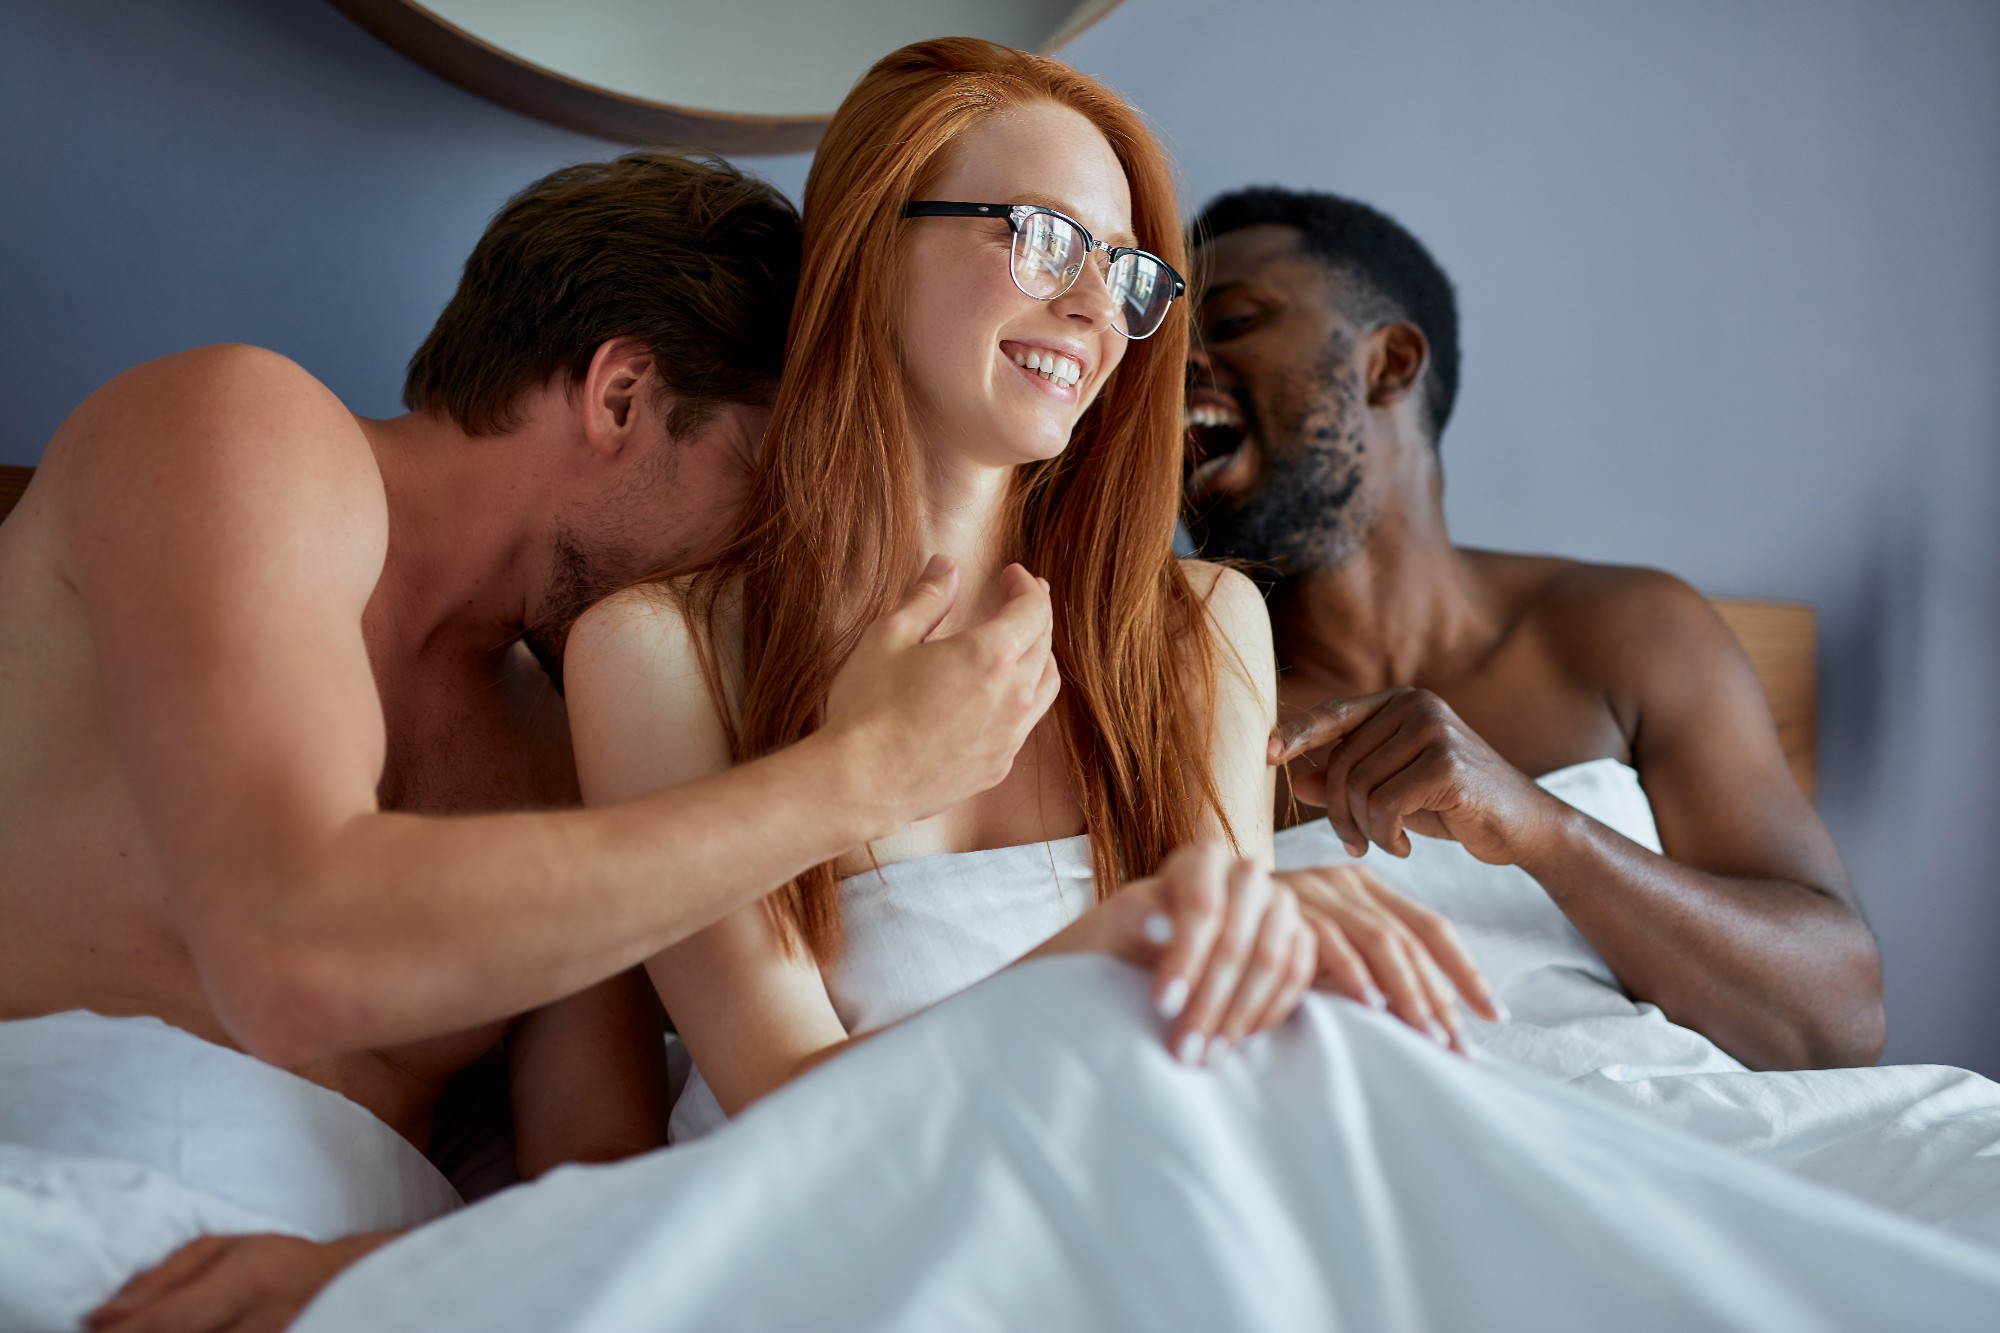 Two men and a woman are naked in bed under white sheets. One man is white, the other black. The woman is white with red hair and glasses. They are clearly intimate, but laughing as if having a relaxed time.